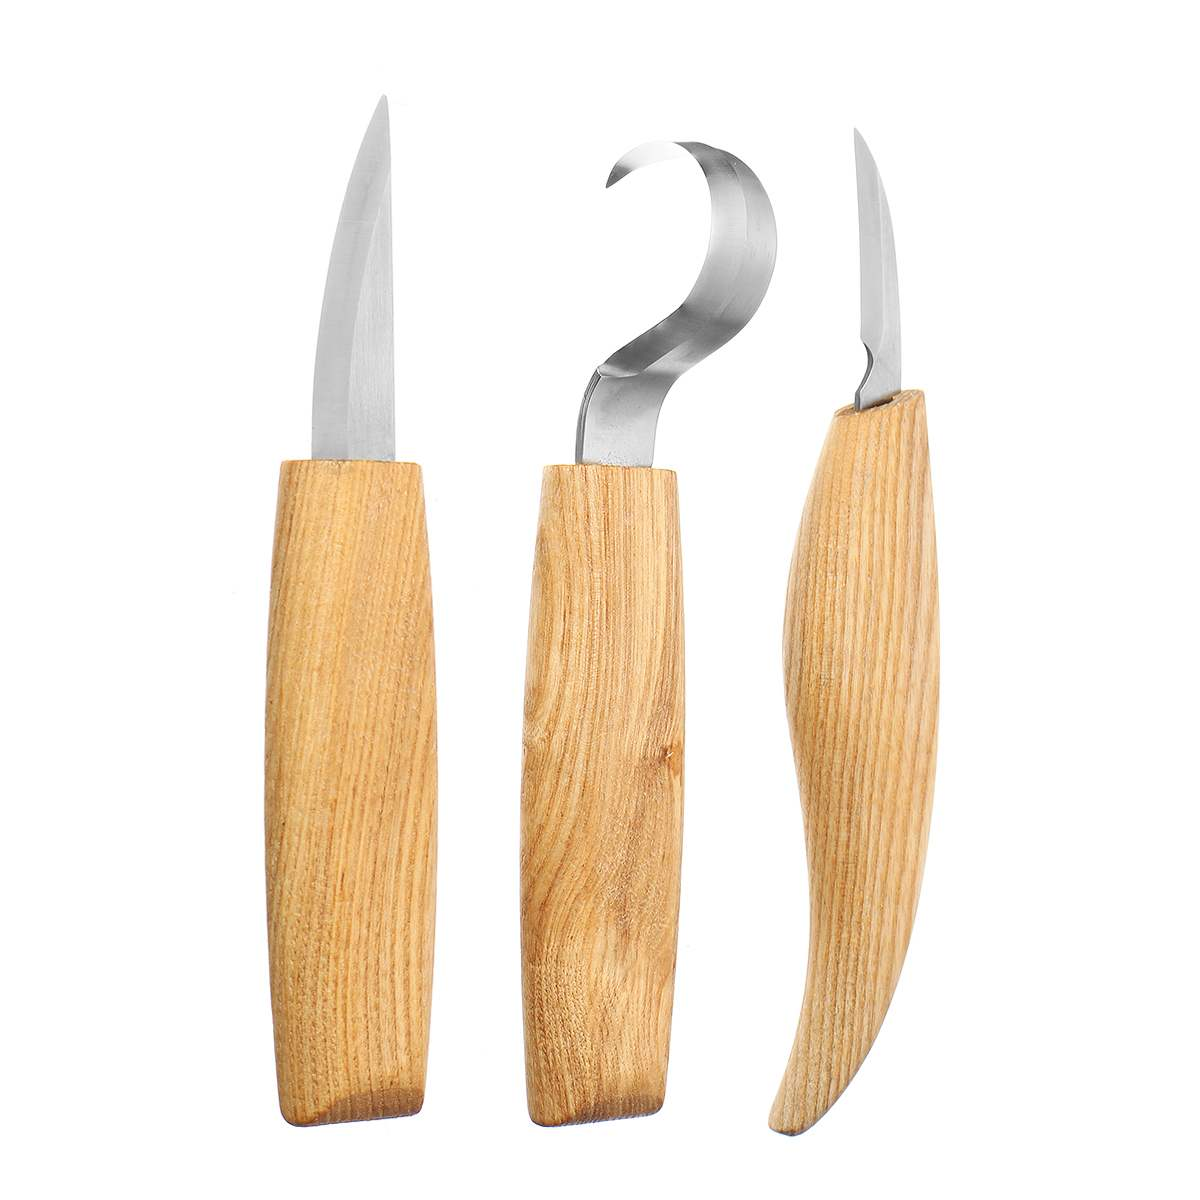 3PCS Spoon Carving Knife Woodcut DIY Hand Chisel Wood Carving Tools Woodcarving Cutter Chip Knives Woodworking Hand Tools